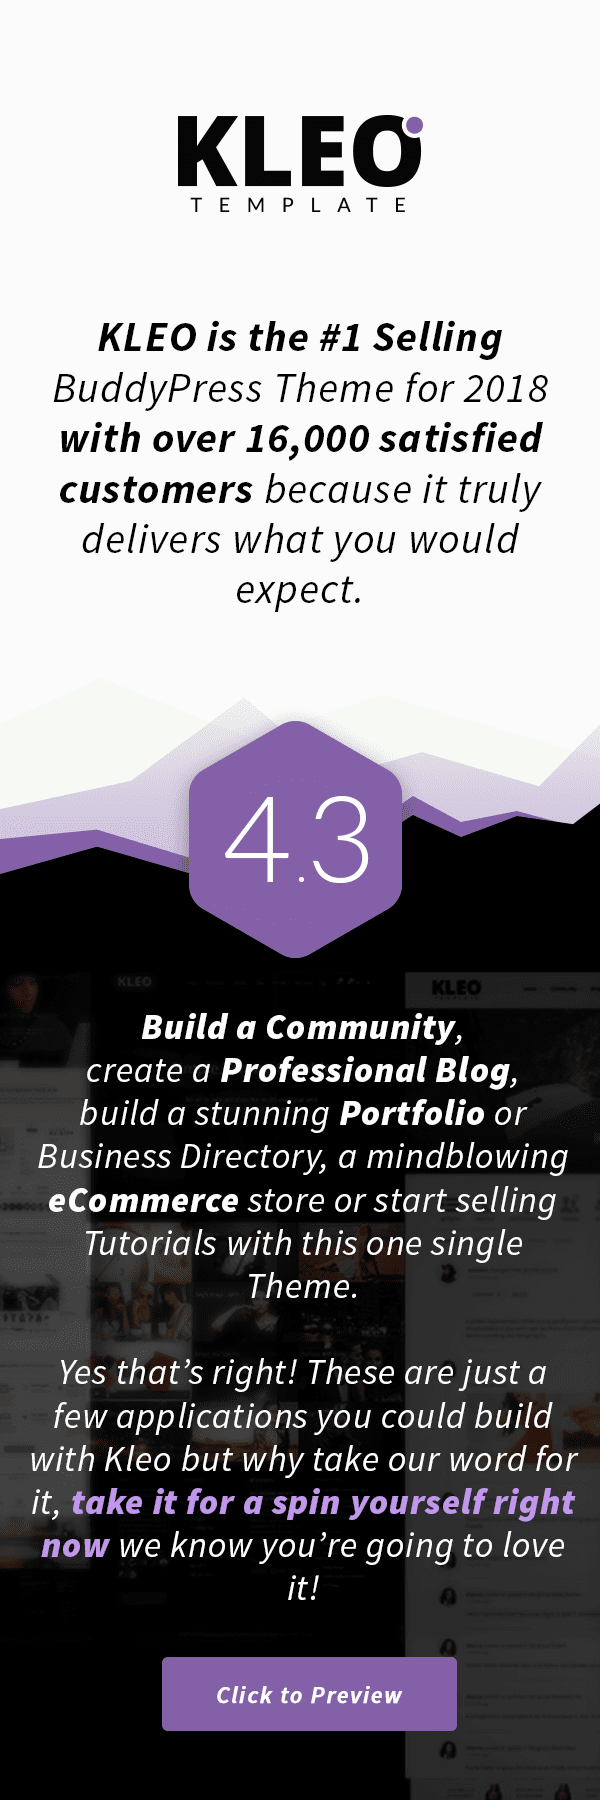 KLEO - Pro Community Focused, Multi-Purpose BuddyPress Theme - 2